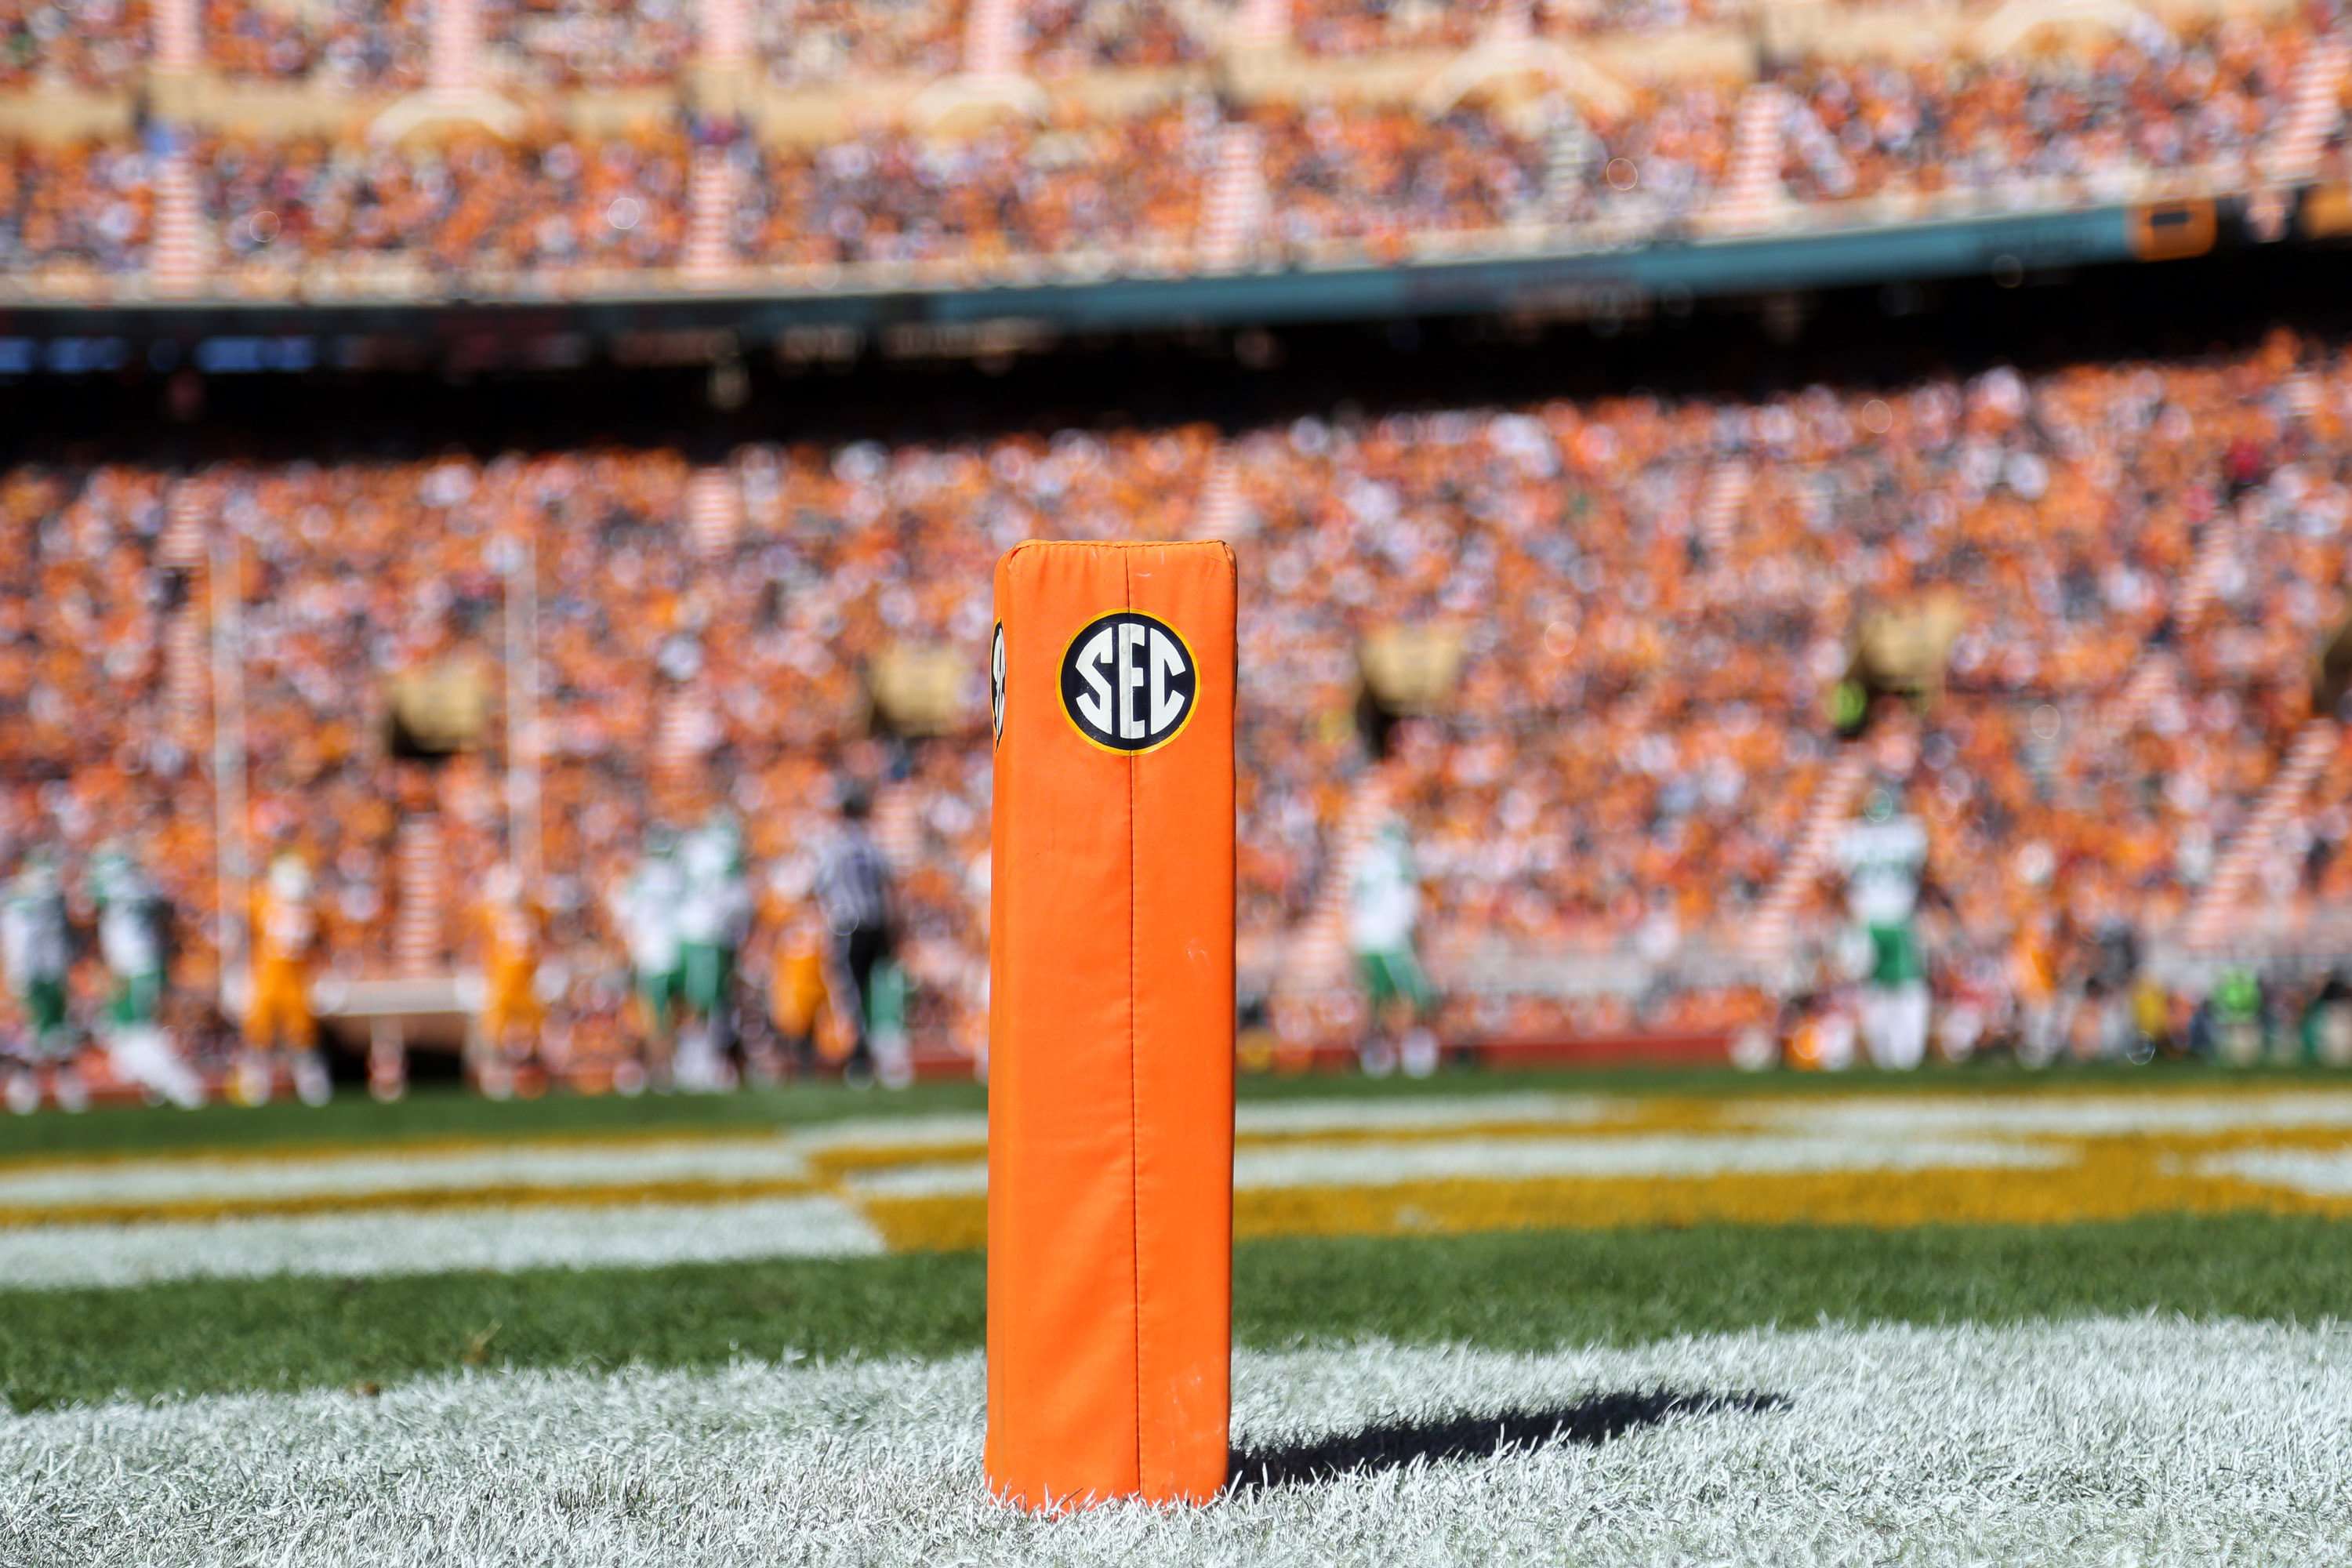 Offensive lineman out of tennessee has 8 sec teams in his top 10 publicscrutiny Gallery